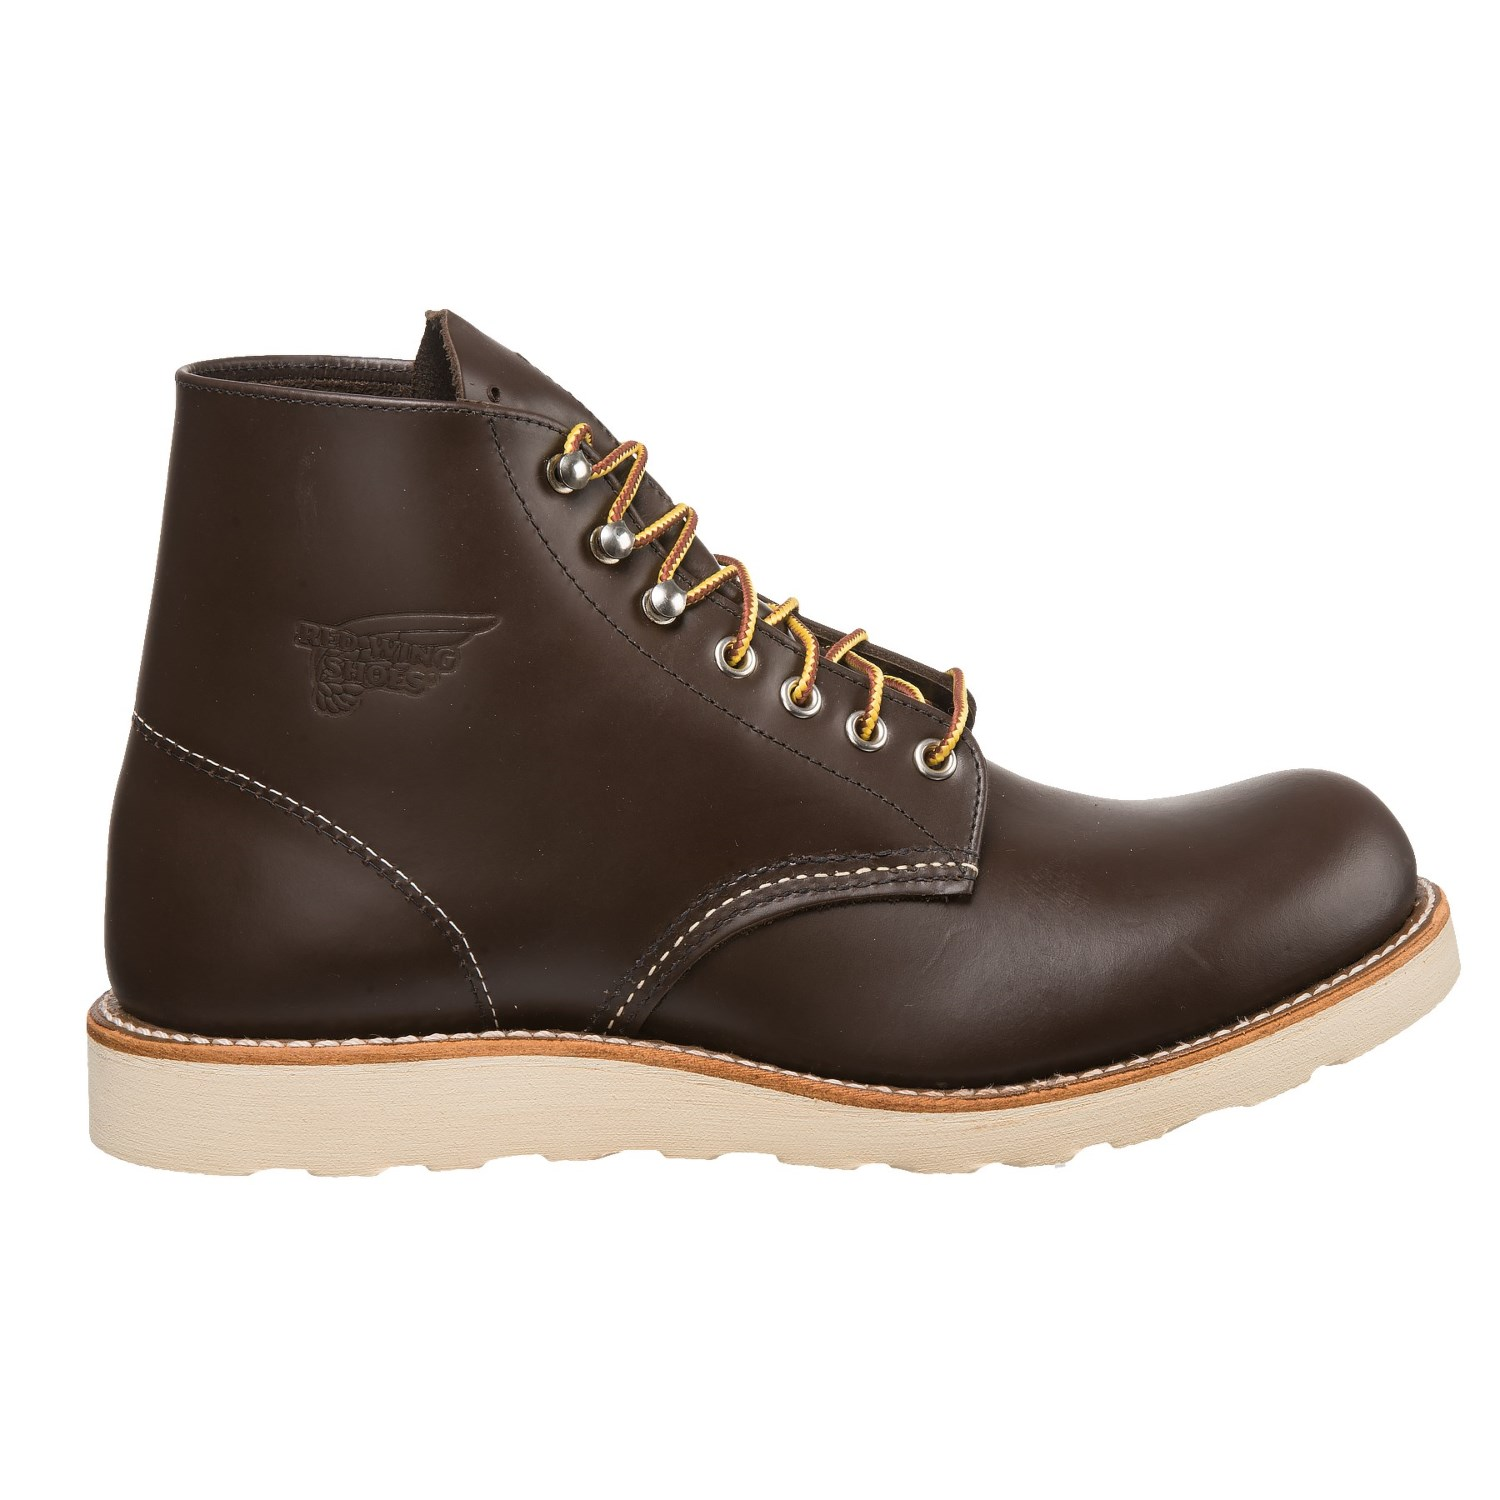 Red Wing Shoes Factory Seconds